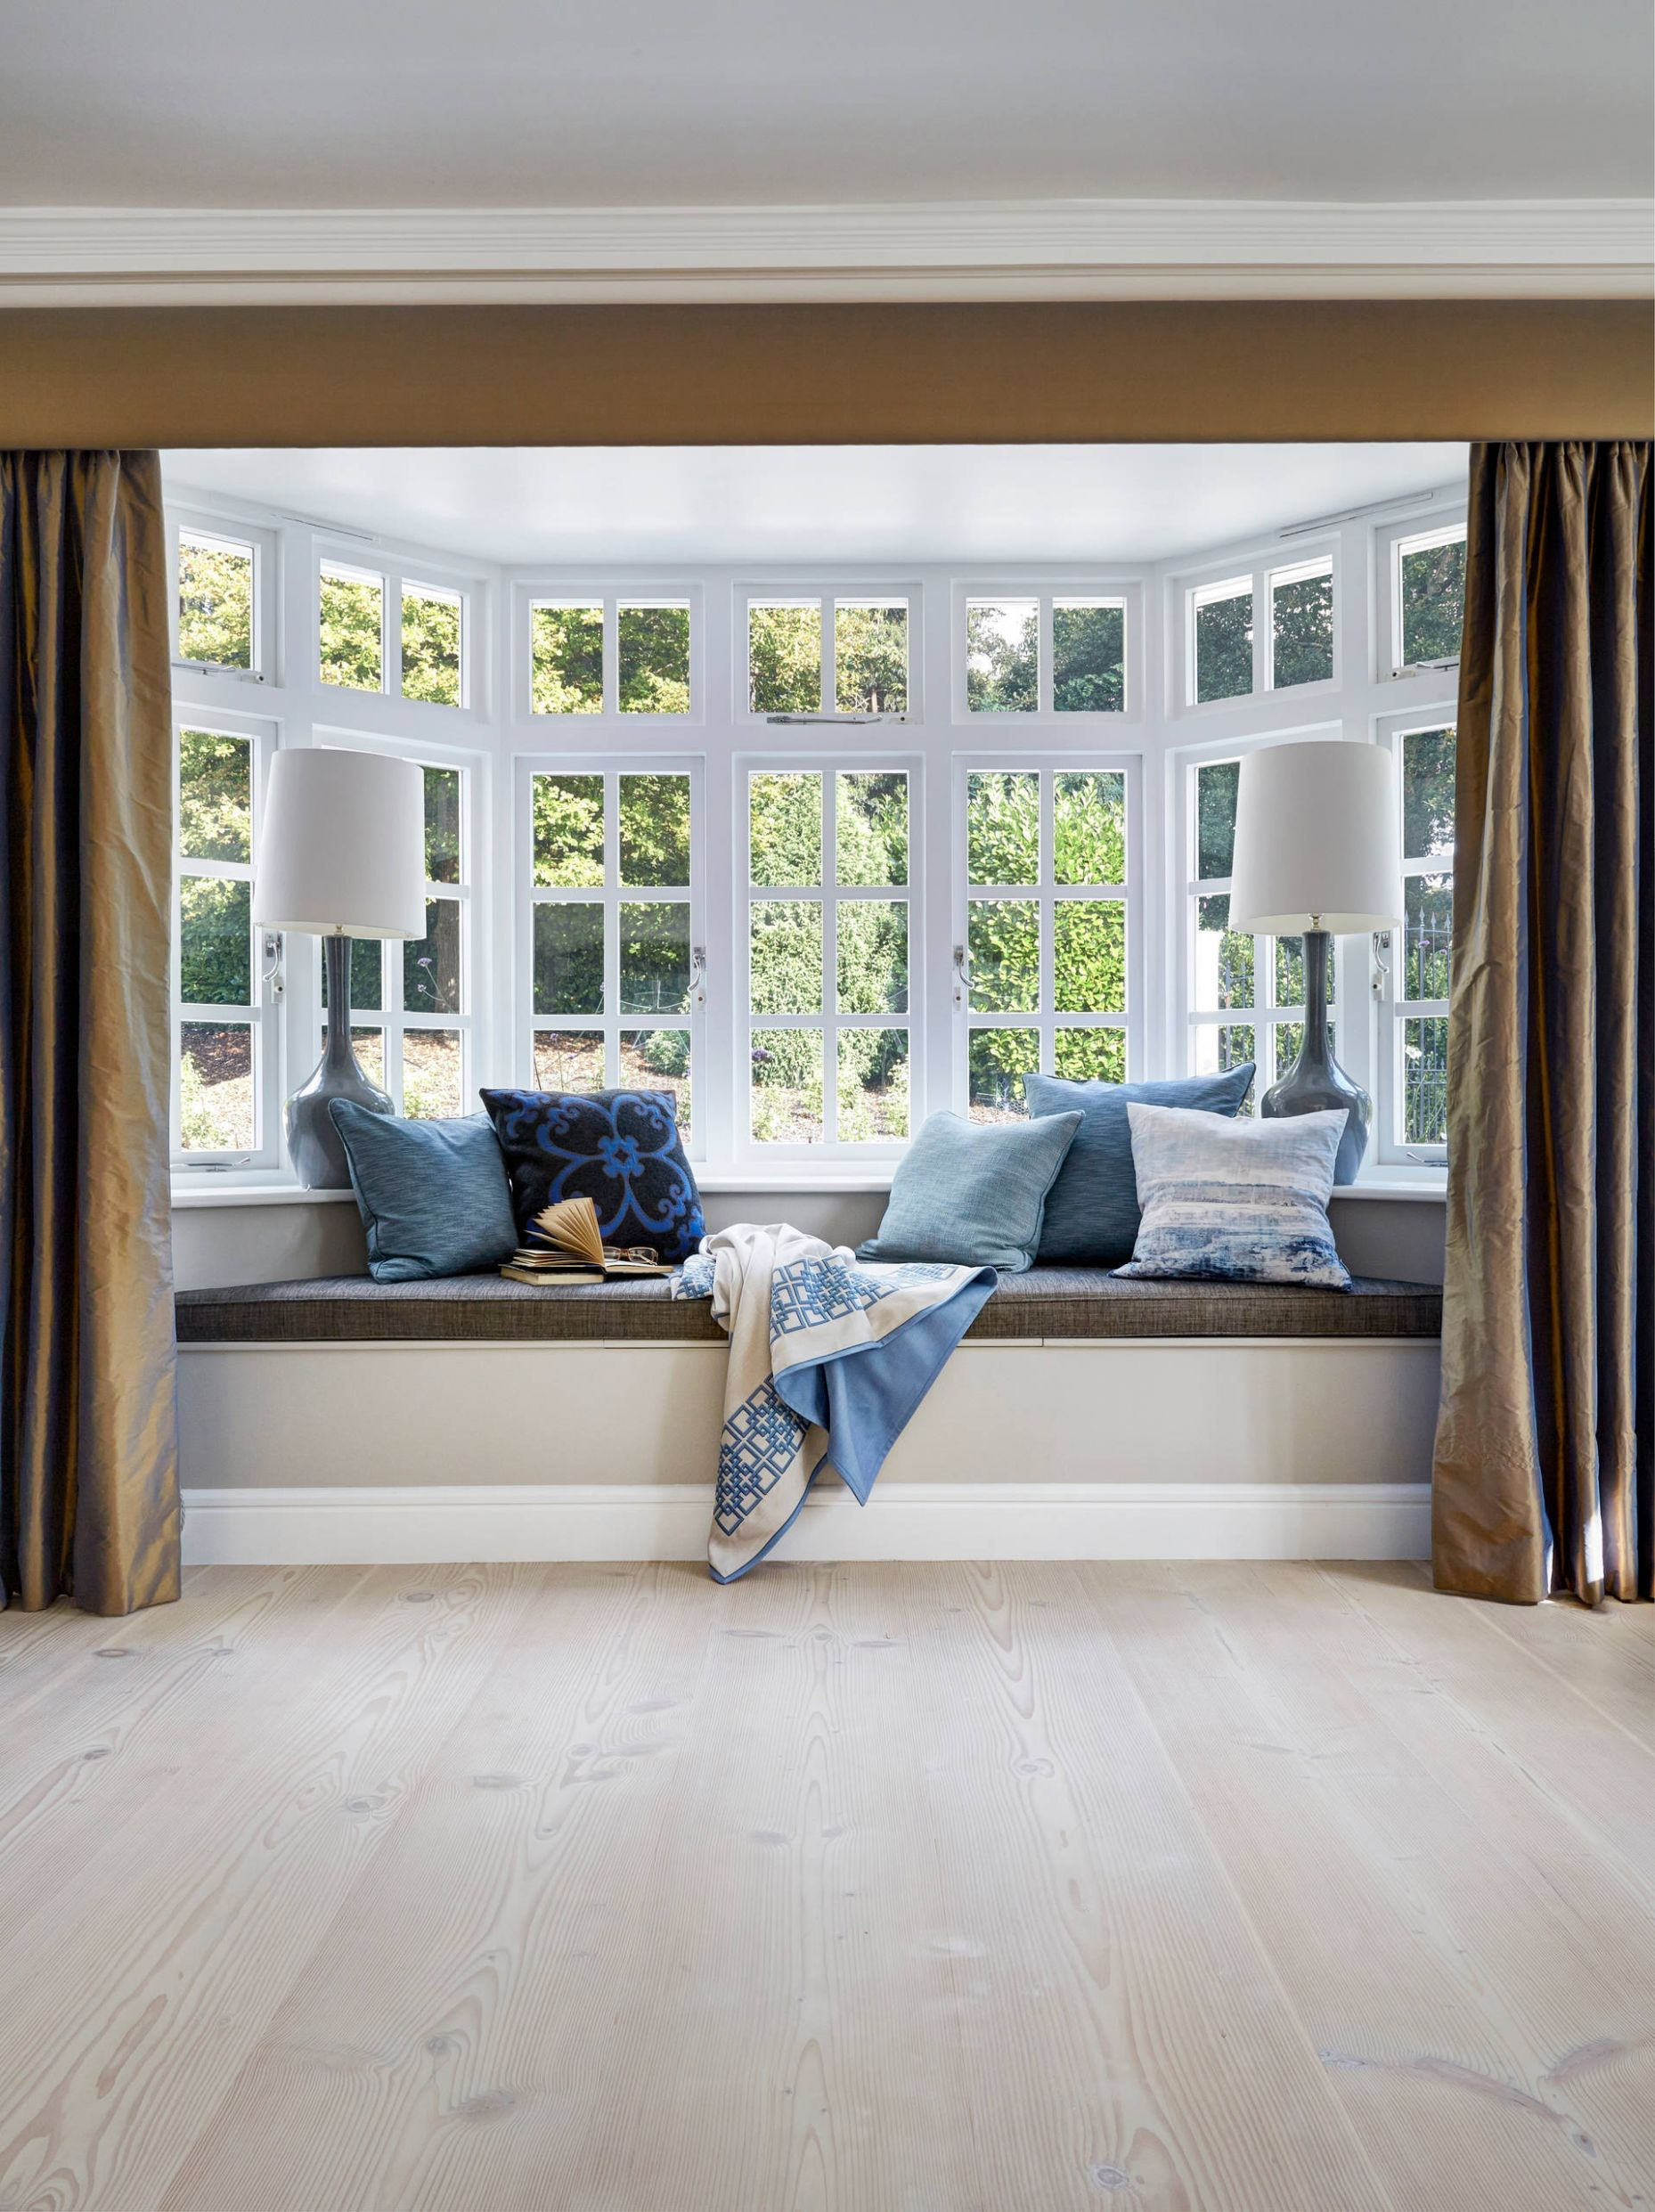 10 Bay Window Treatments To Ponder For Your Panes - window ideas for bay windows